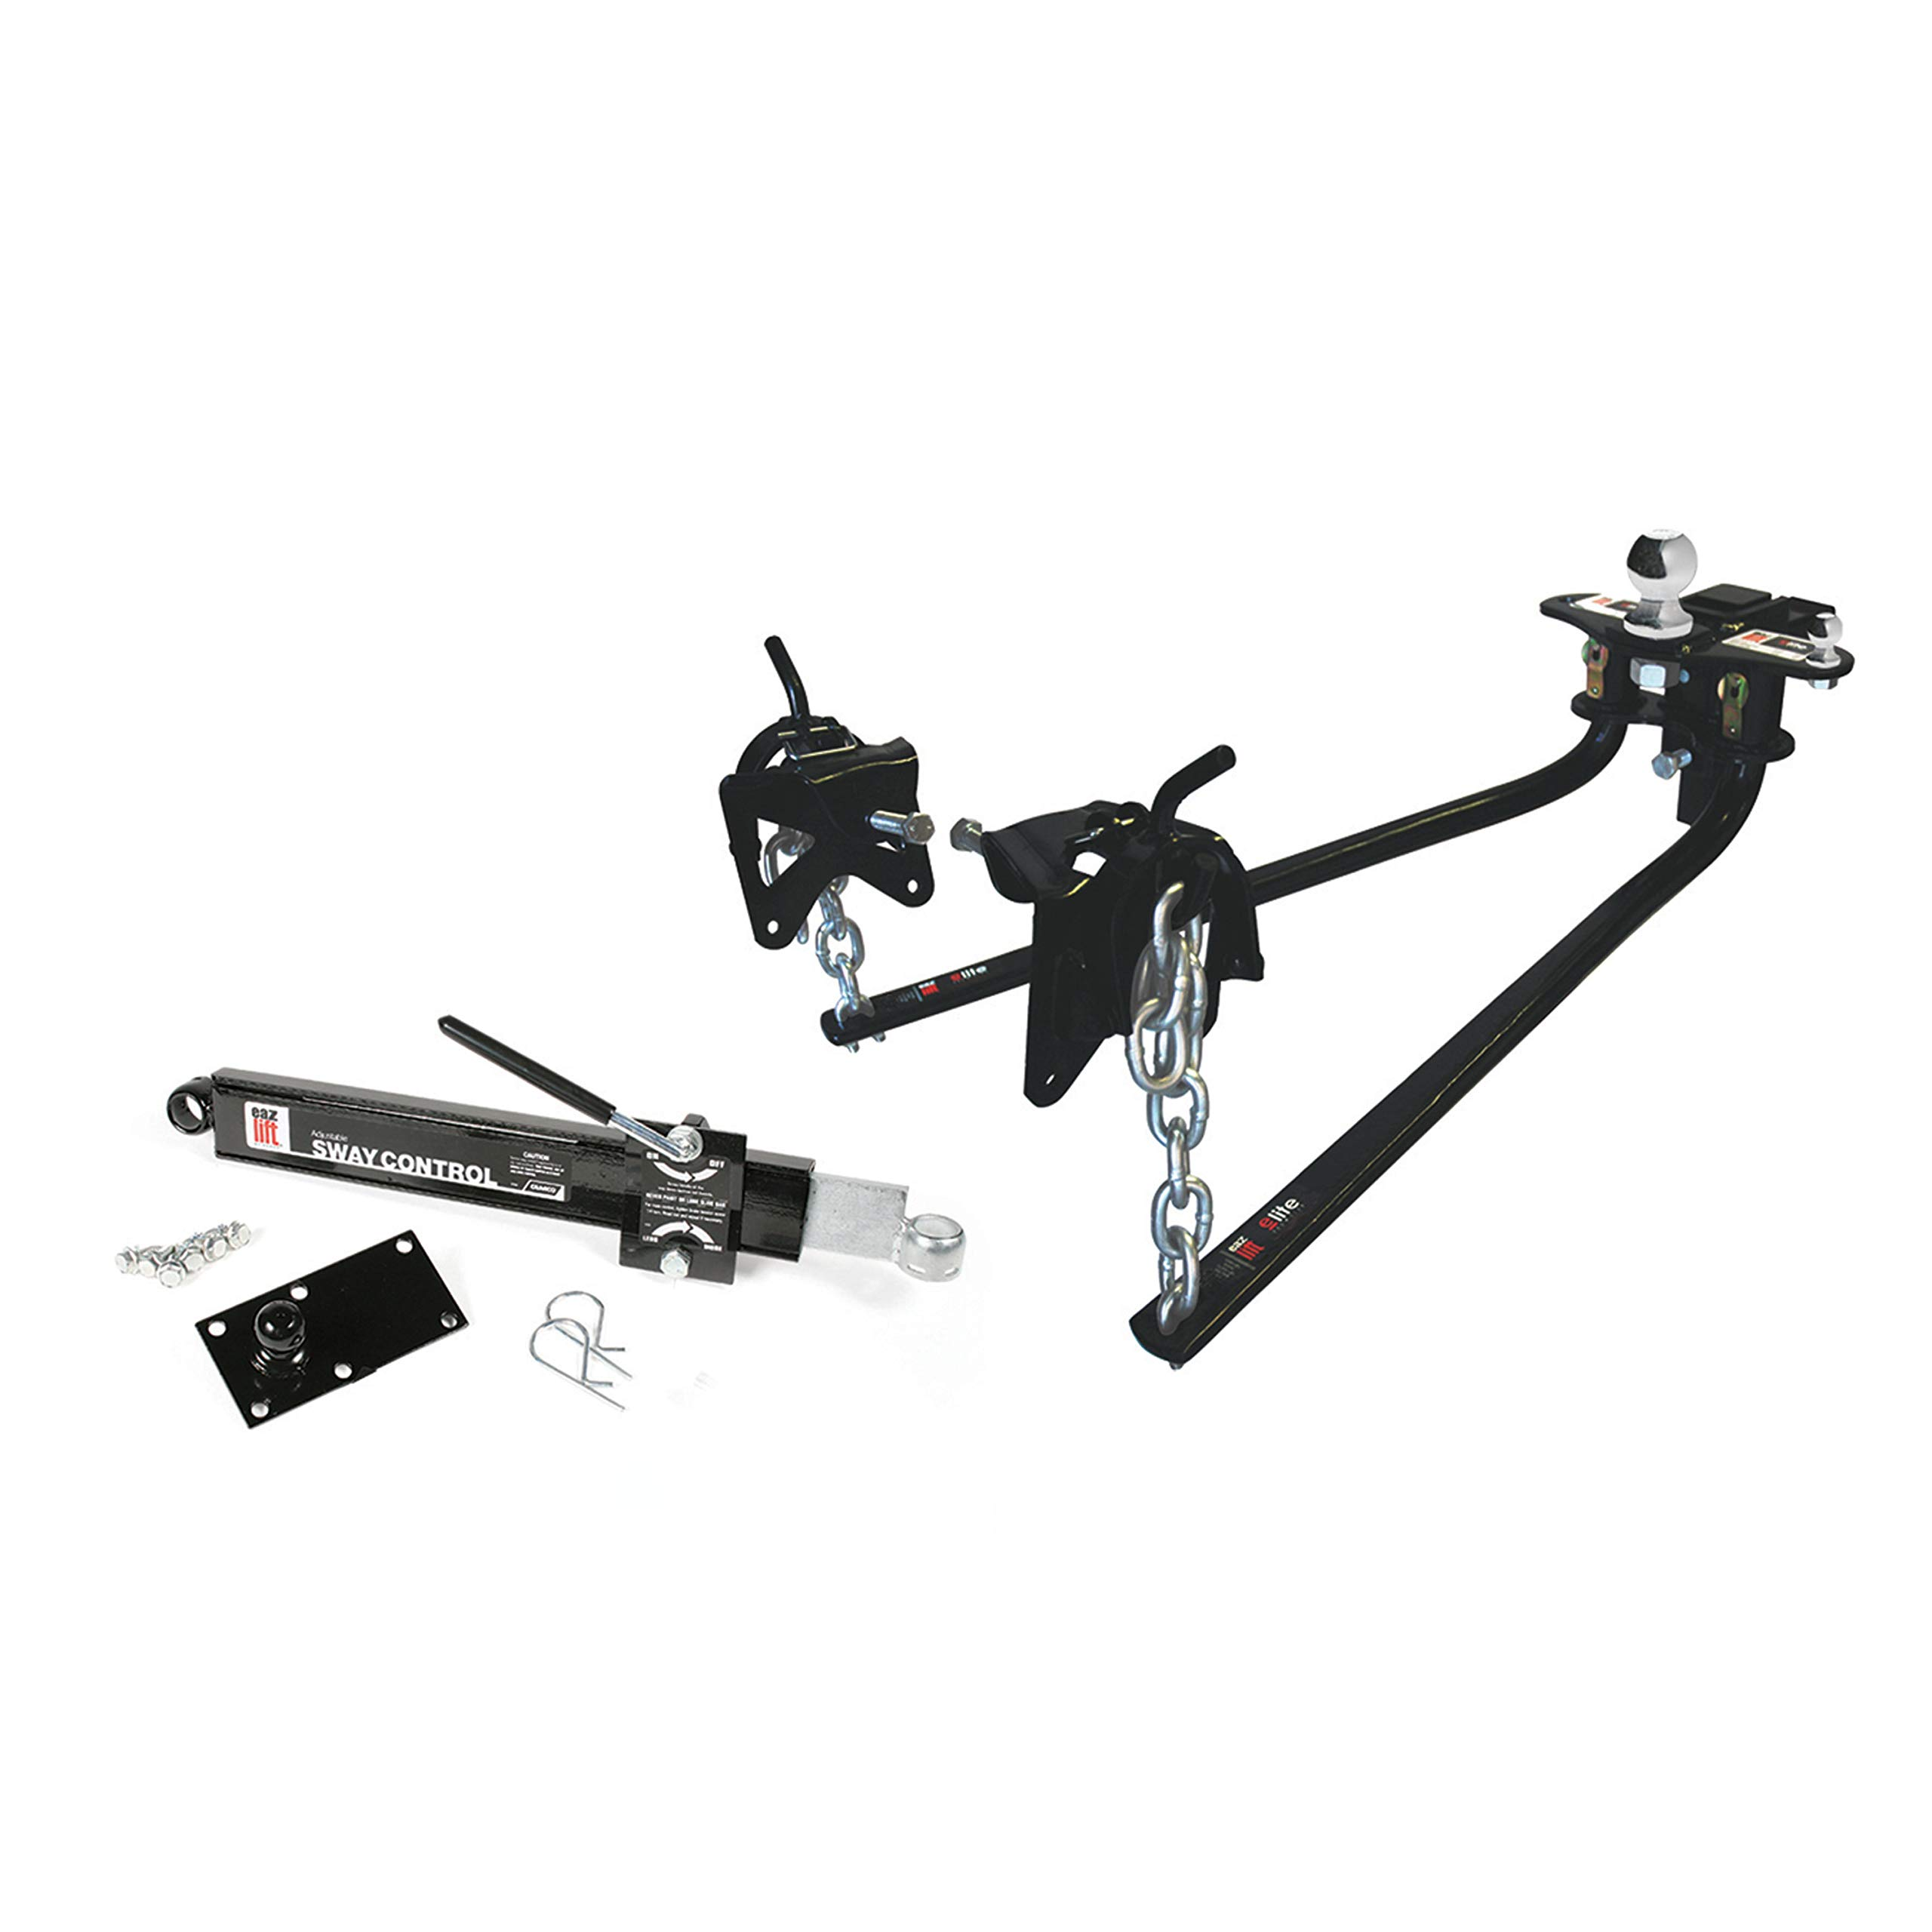 Eaz-lift 48058 bent bar ready-to-tow weight distributing hitch kit.